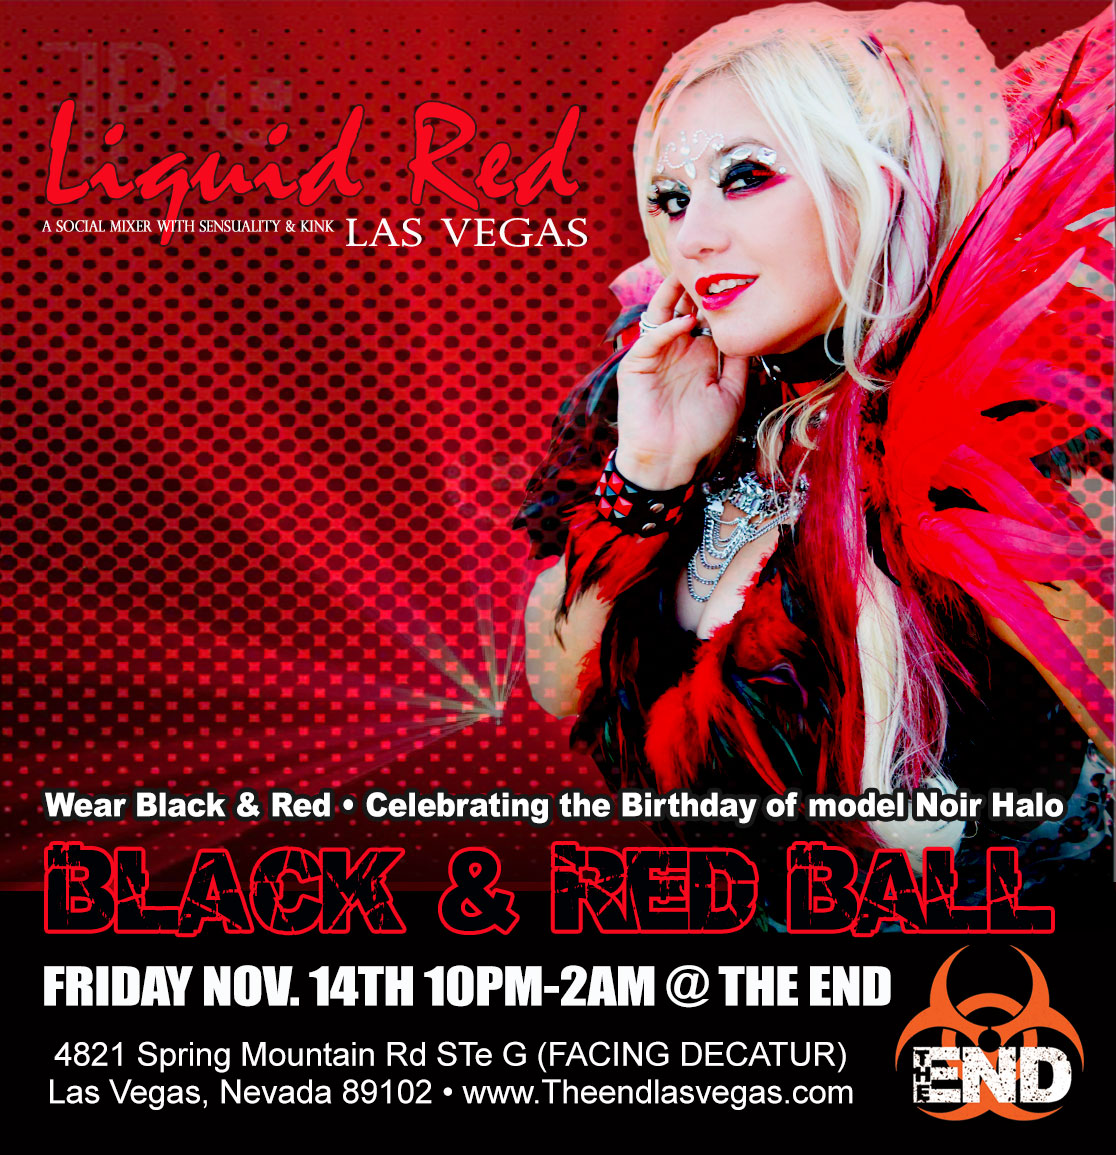 LiquidRed-nov14-flyer1